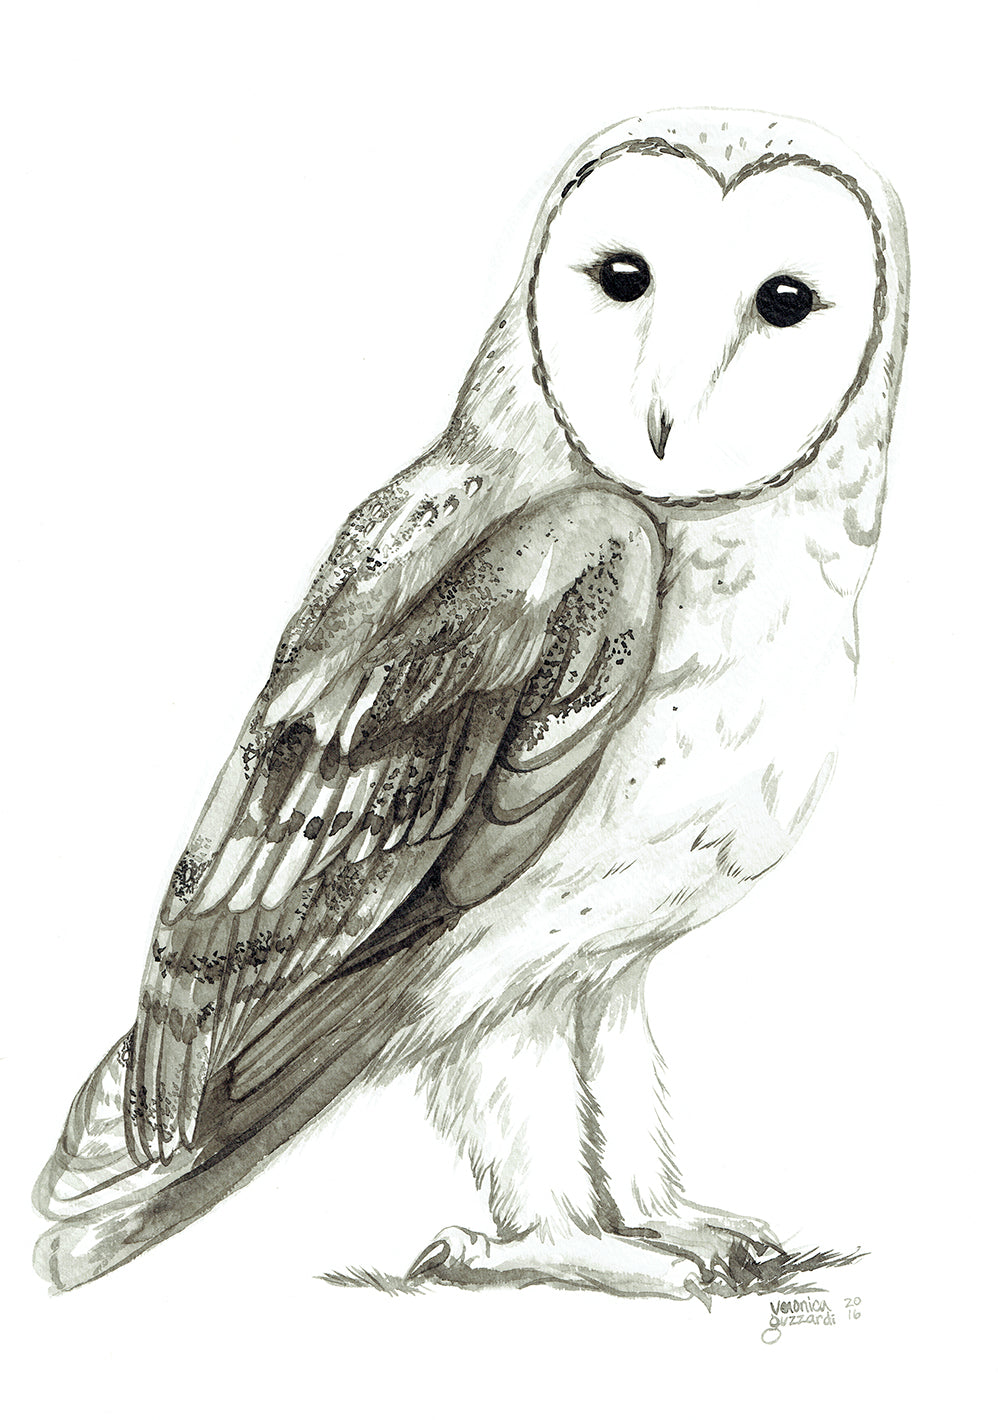 2016 Superb Owl— Barn Owl Original Ink Wash Painting